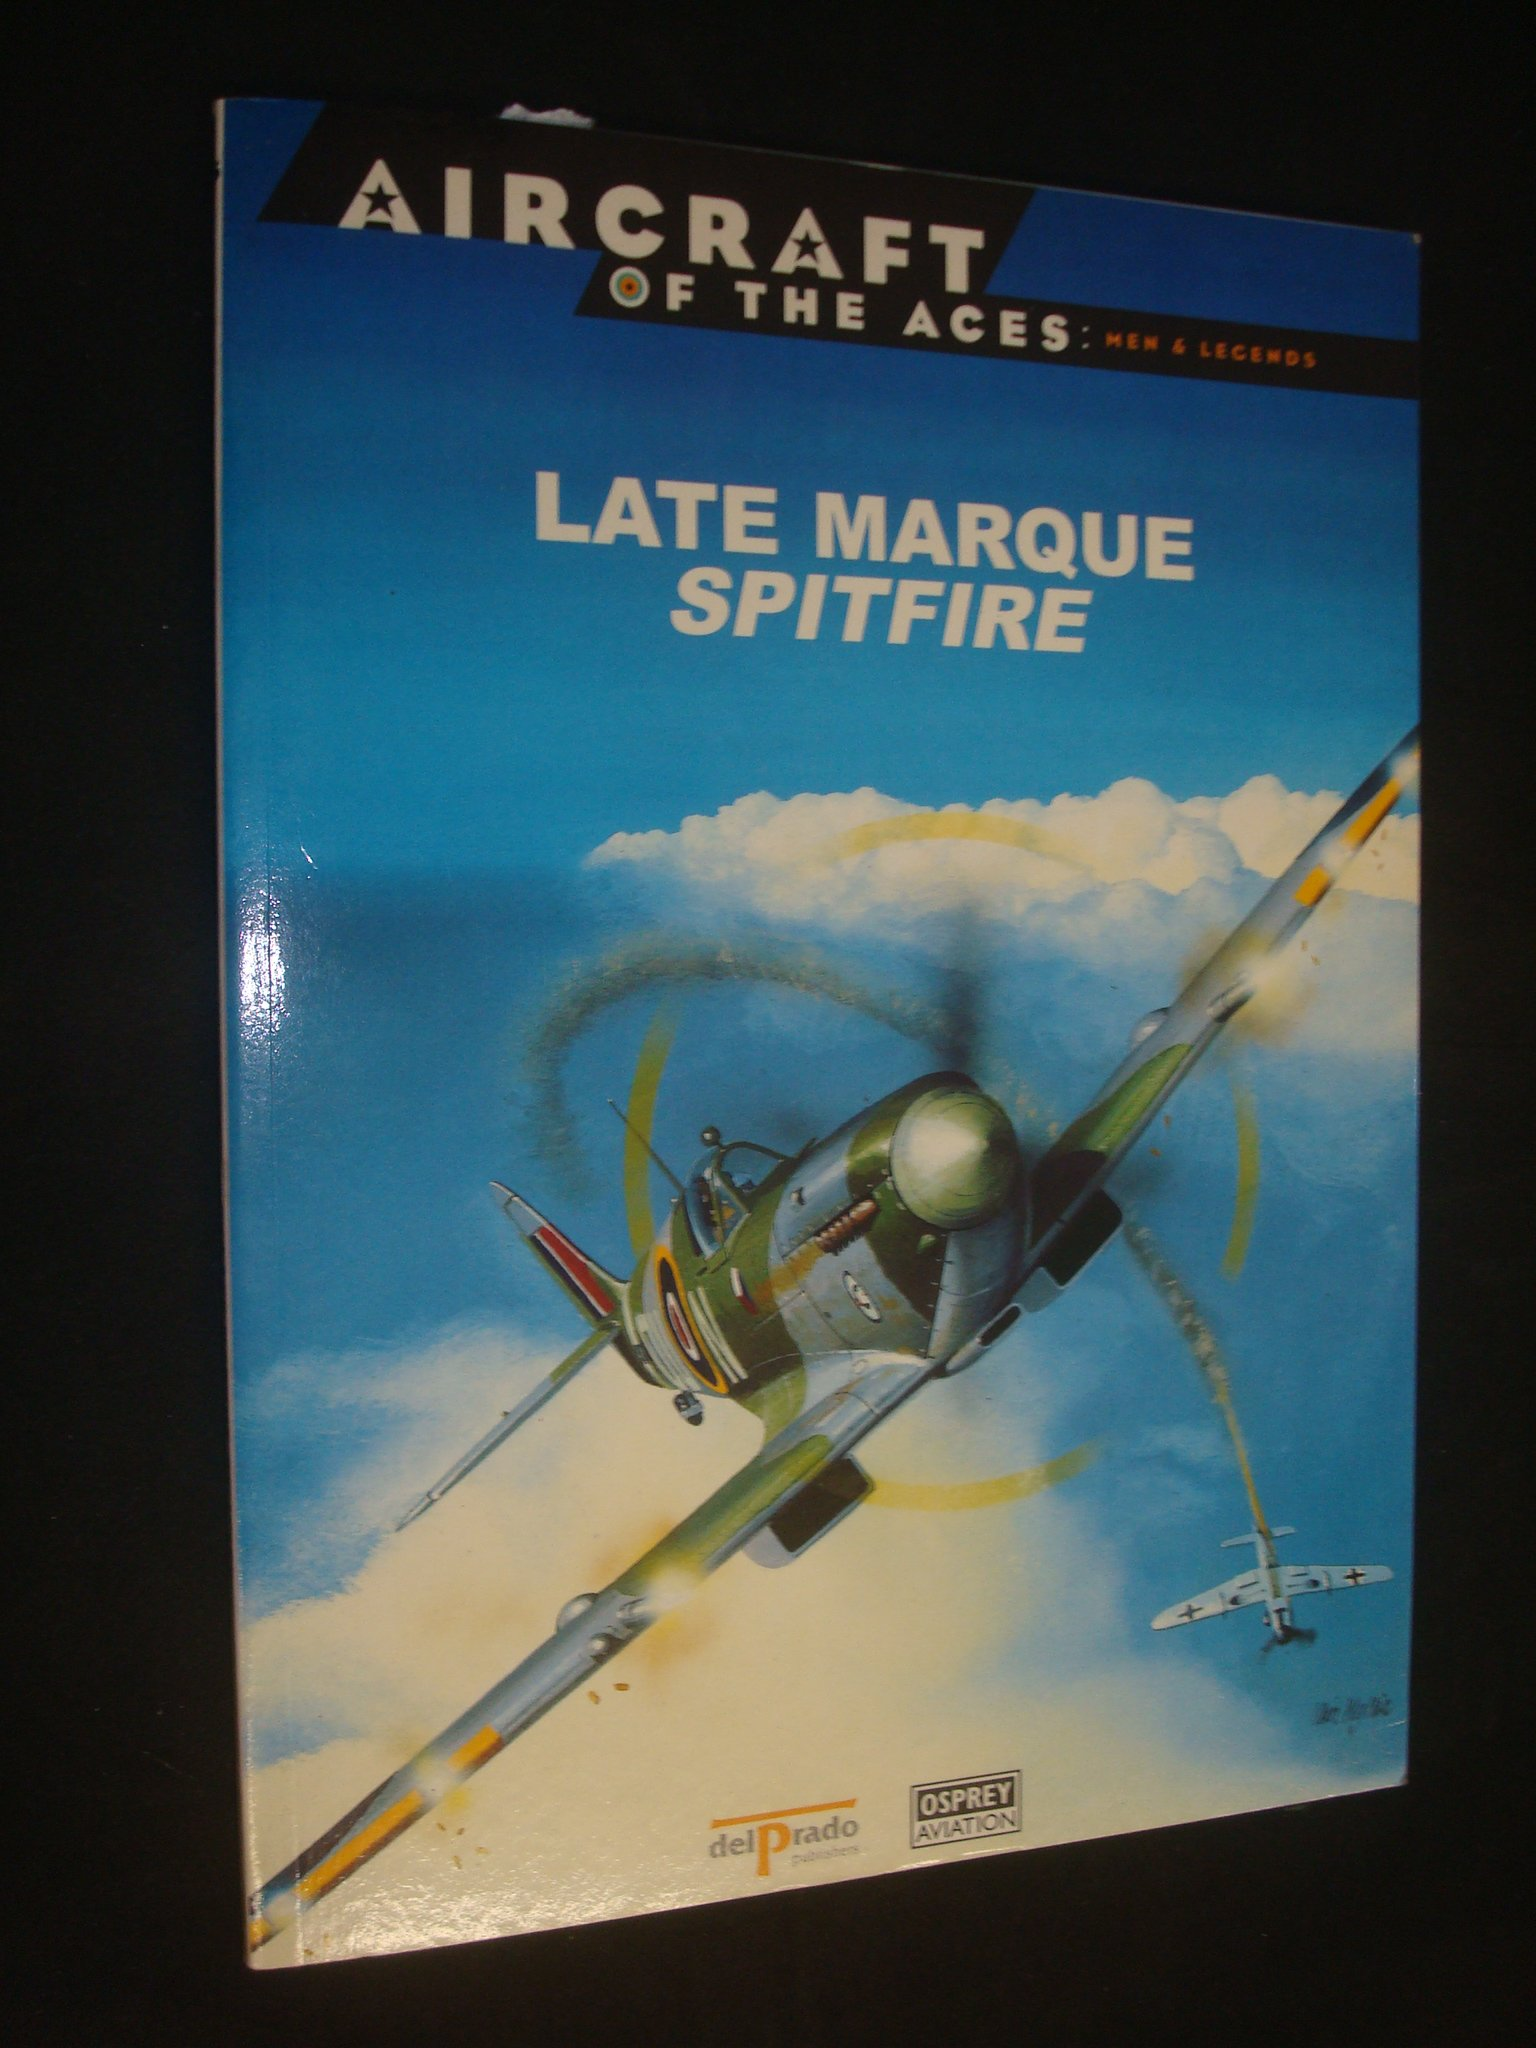 Download LATE MARQUE SPITFIRE ( Aircraft of the Aces: Men and Legends # 26 ) ebook